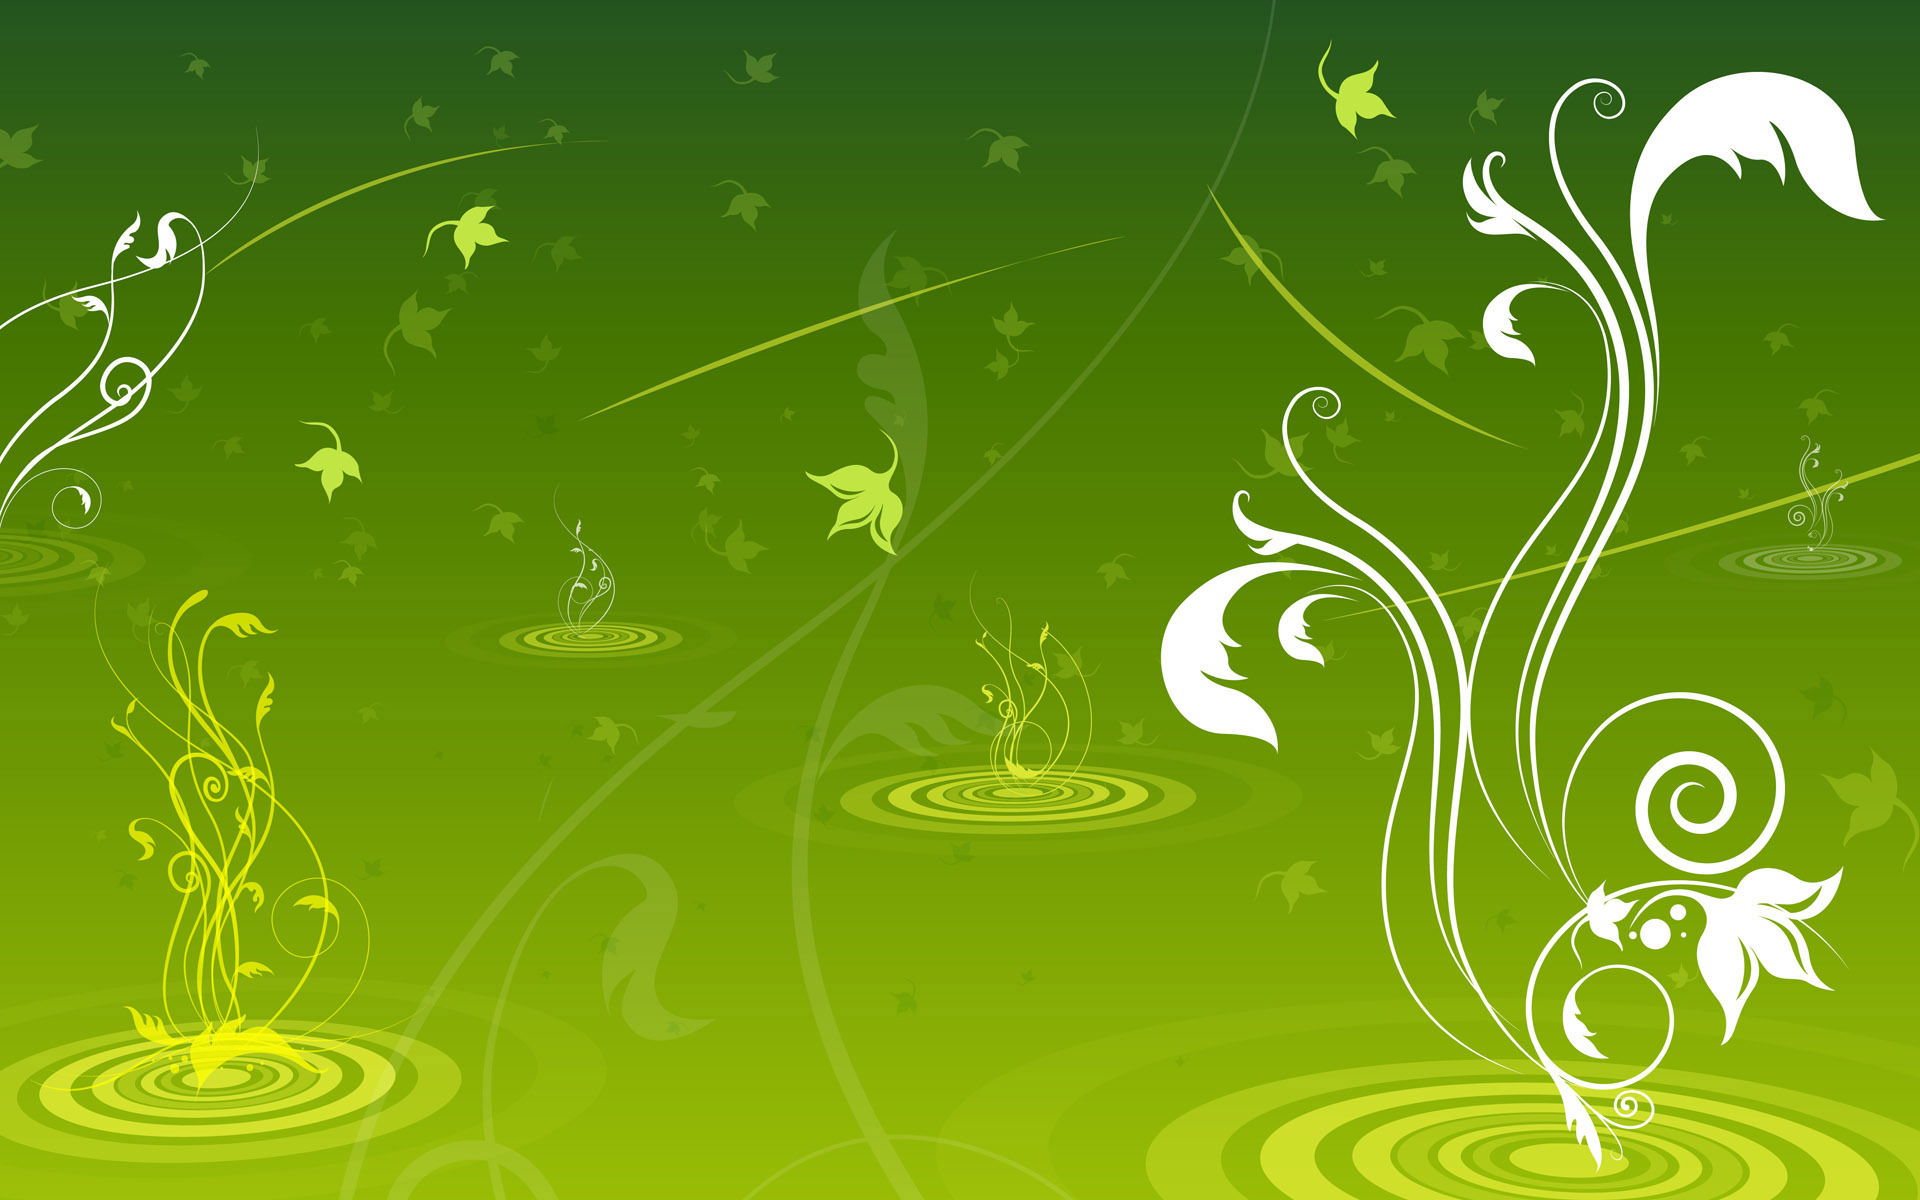 Download 44 HD Green Wallpapers for Windows and Mac 1920x1200